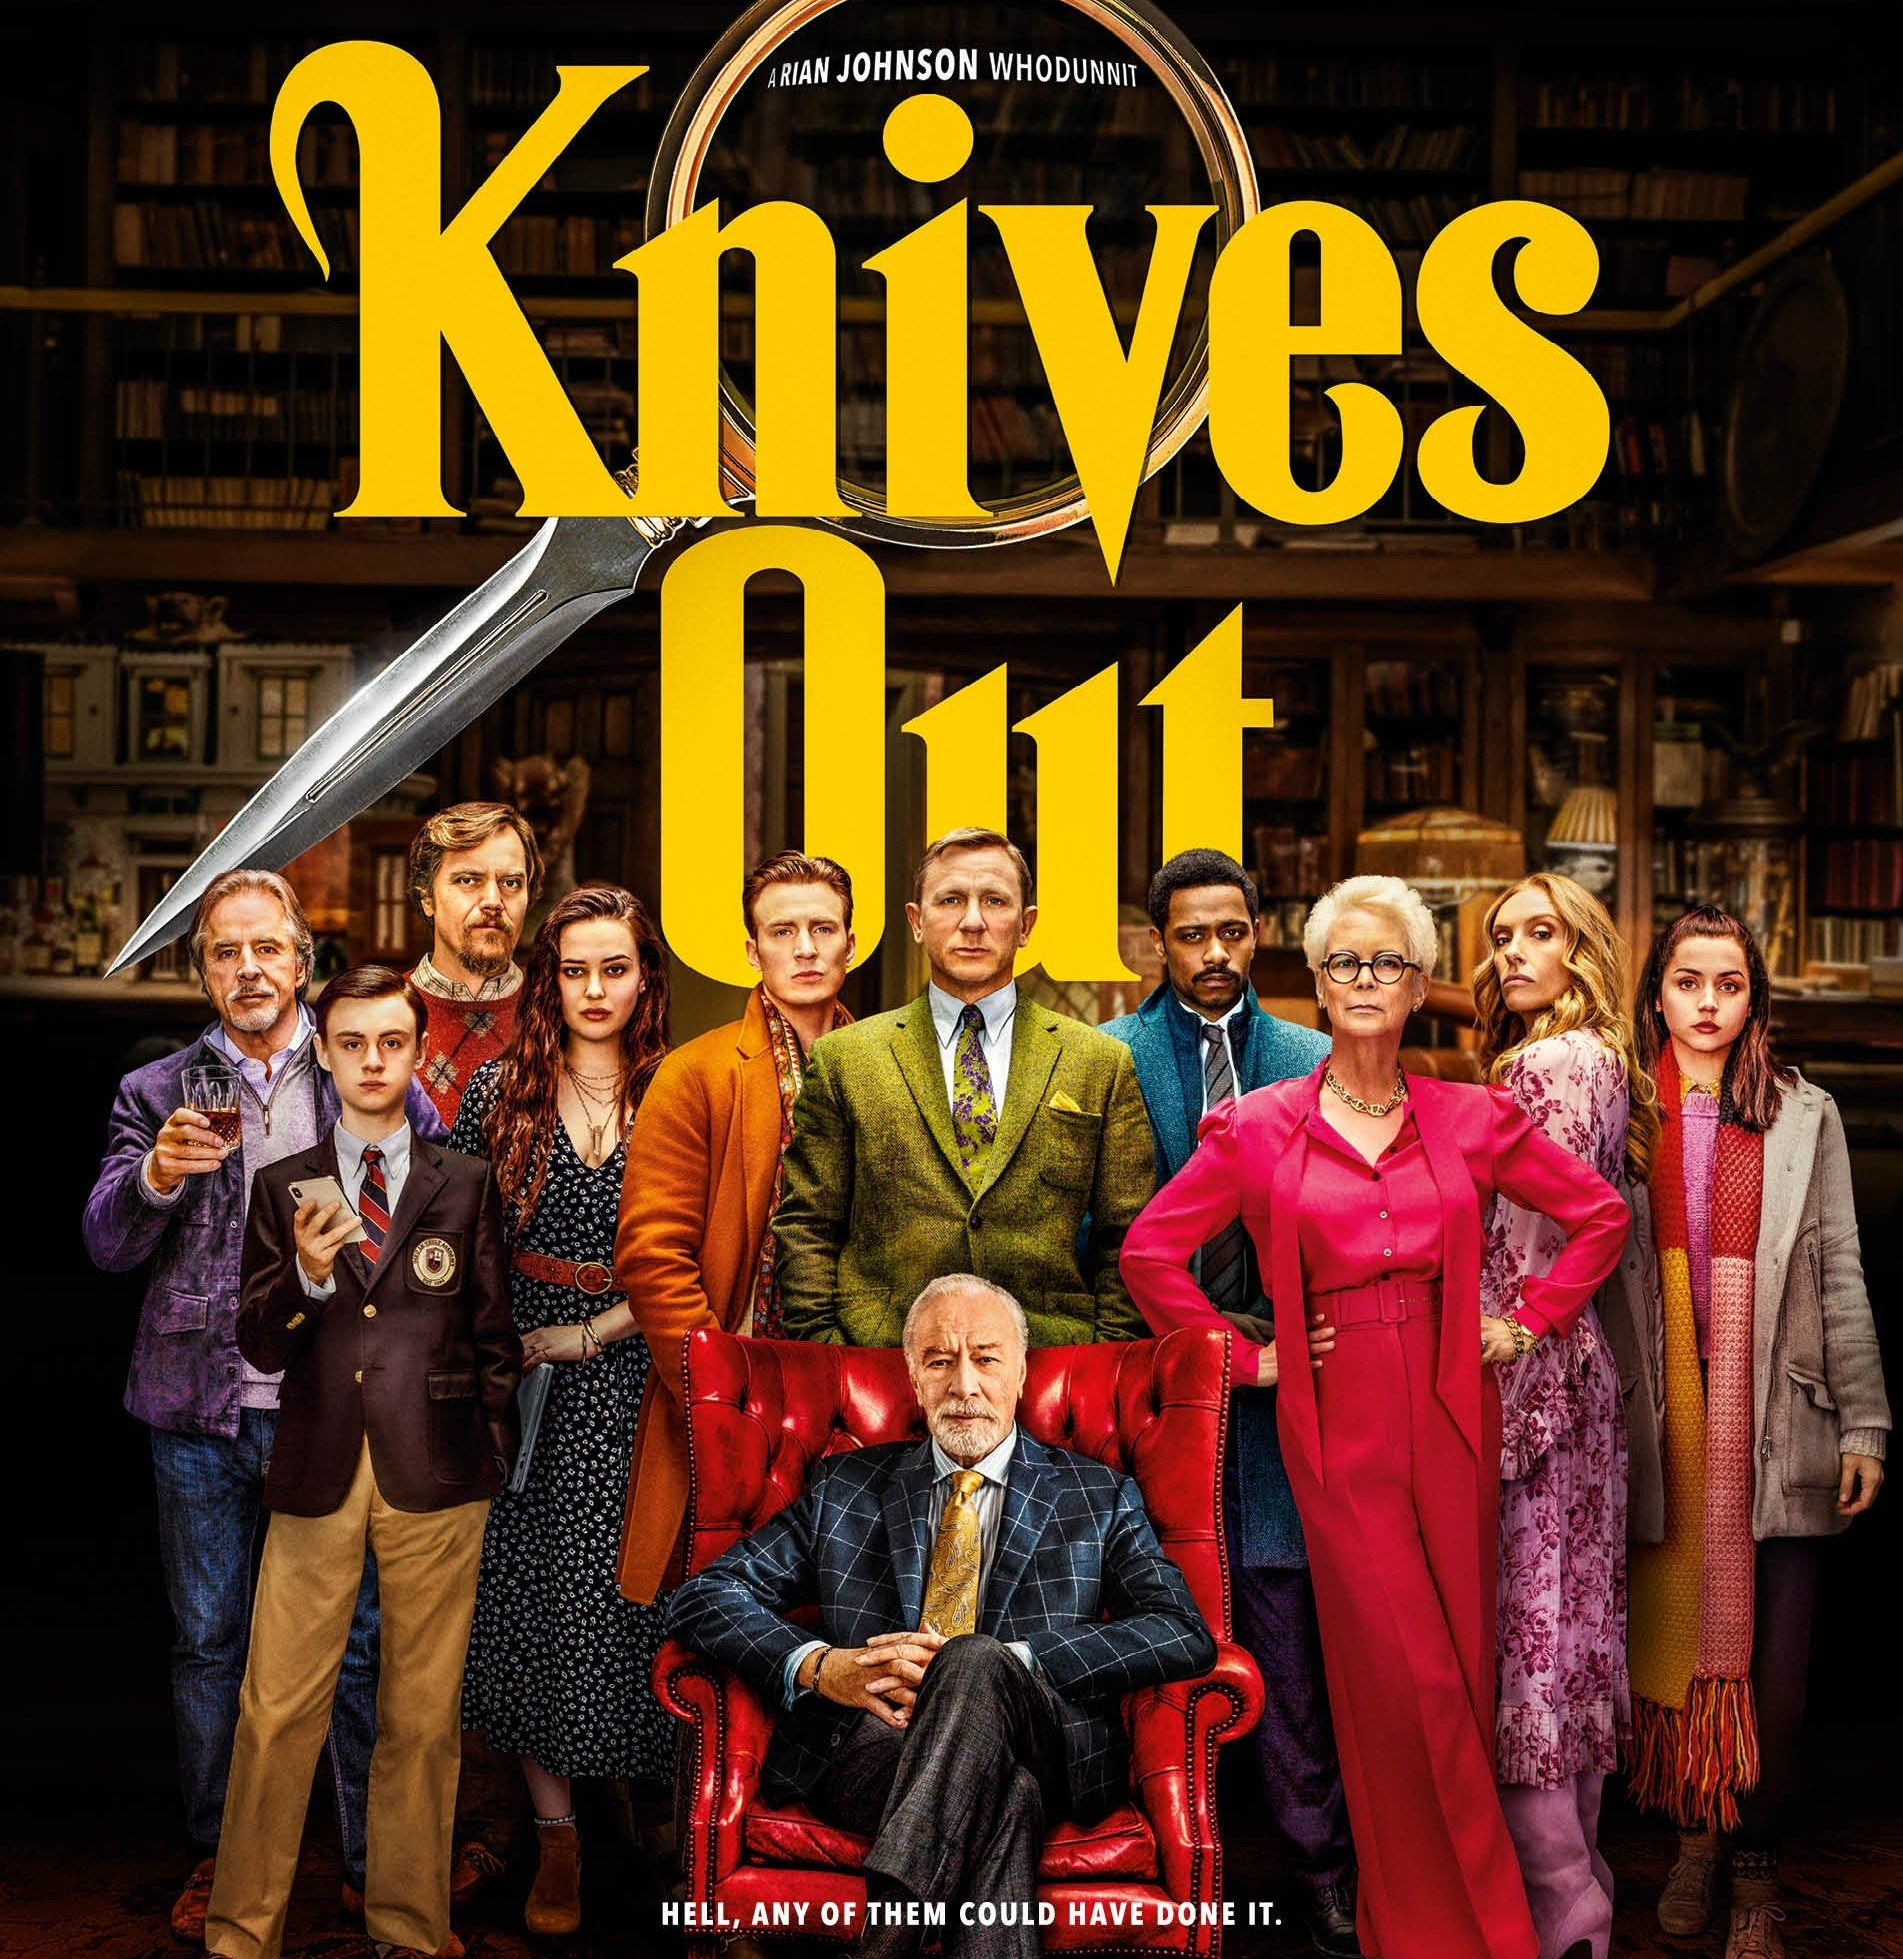 Film Review: Knives Out